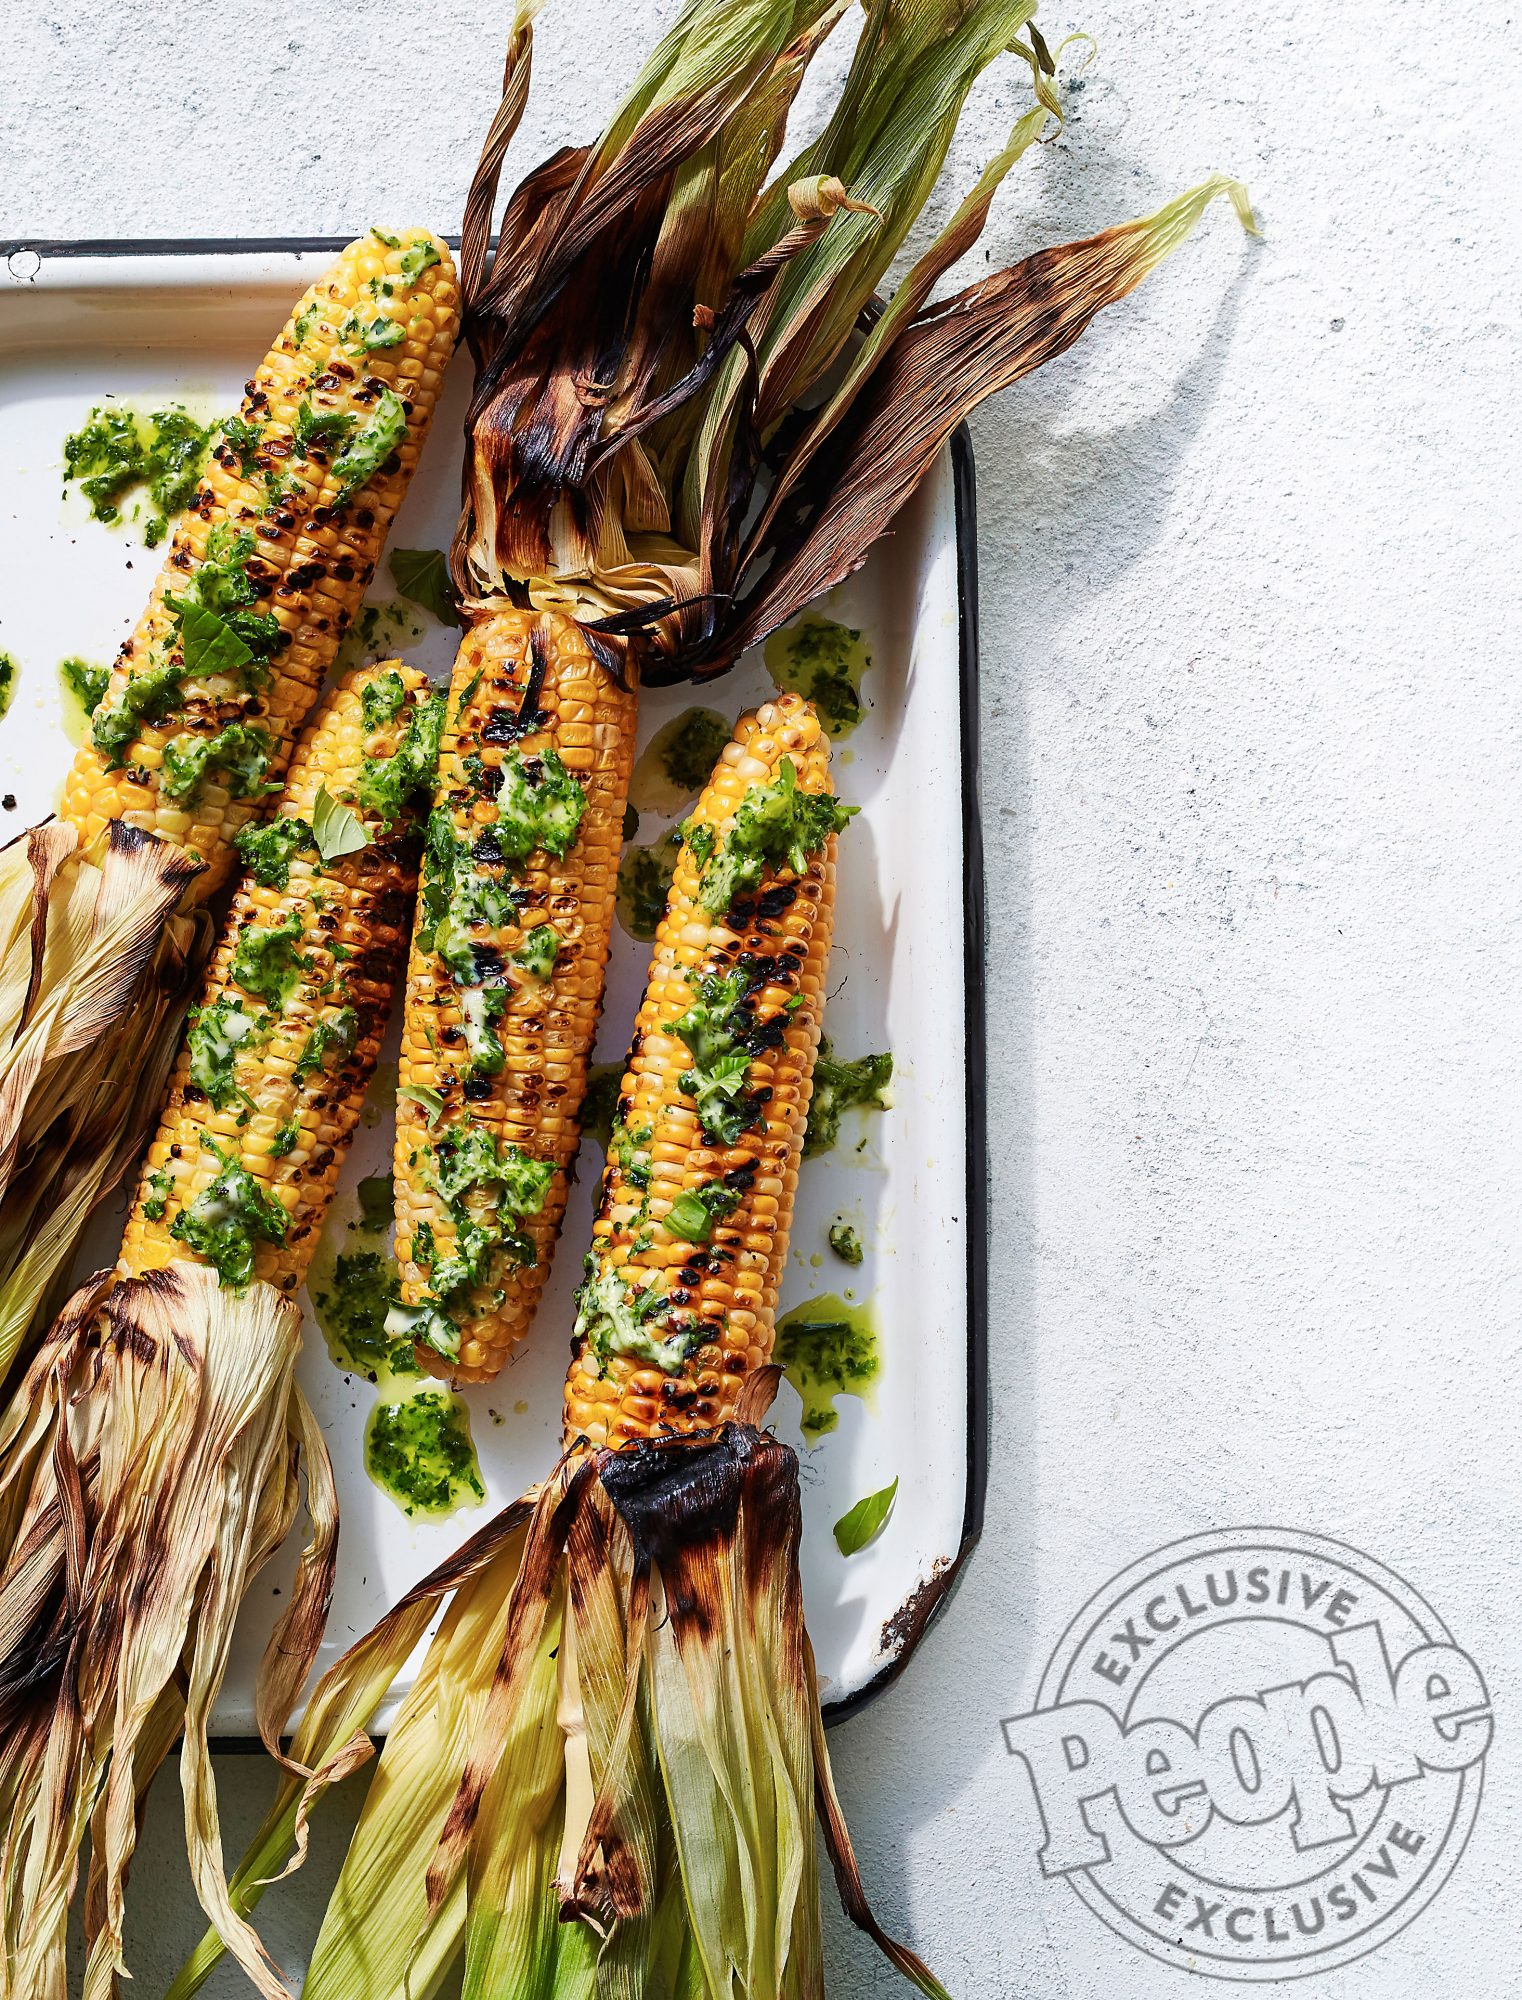 AMY & MIKE MILLS' GRILLED CORN WITH GARLIC HERB BUTTER